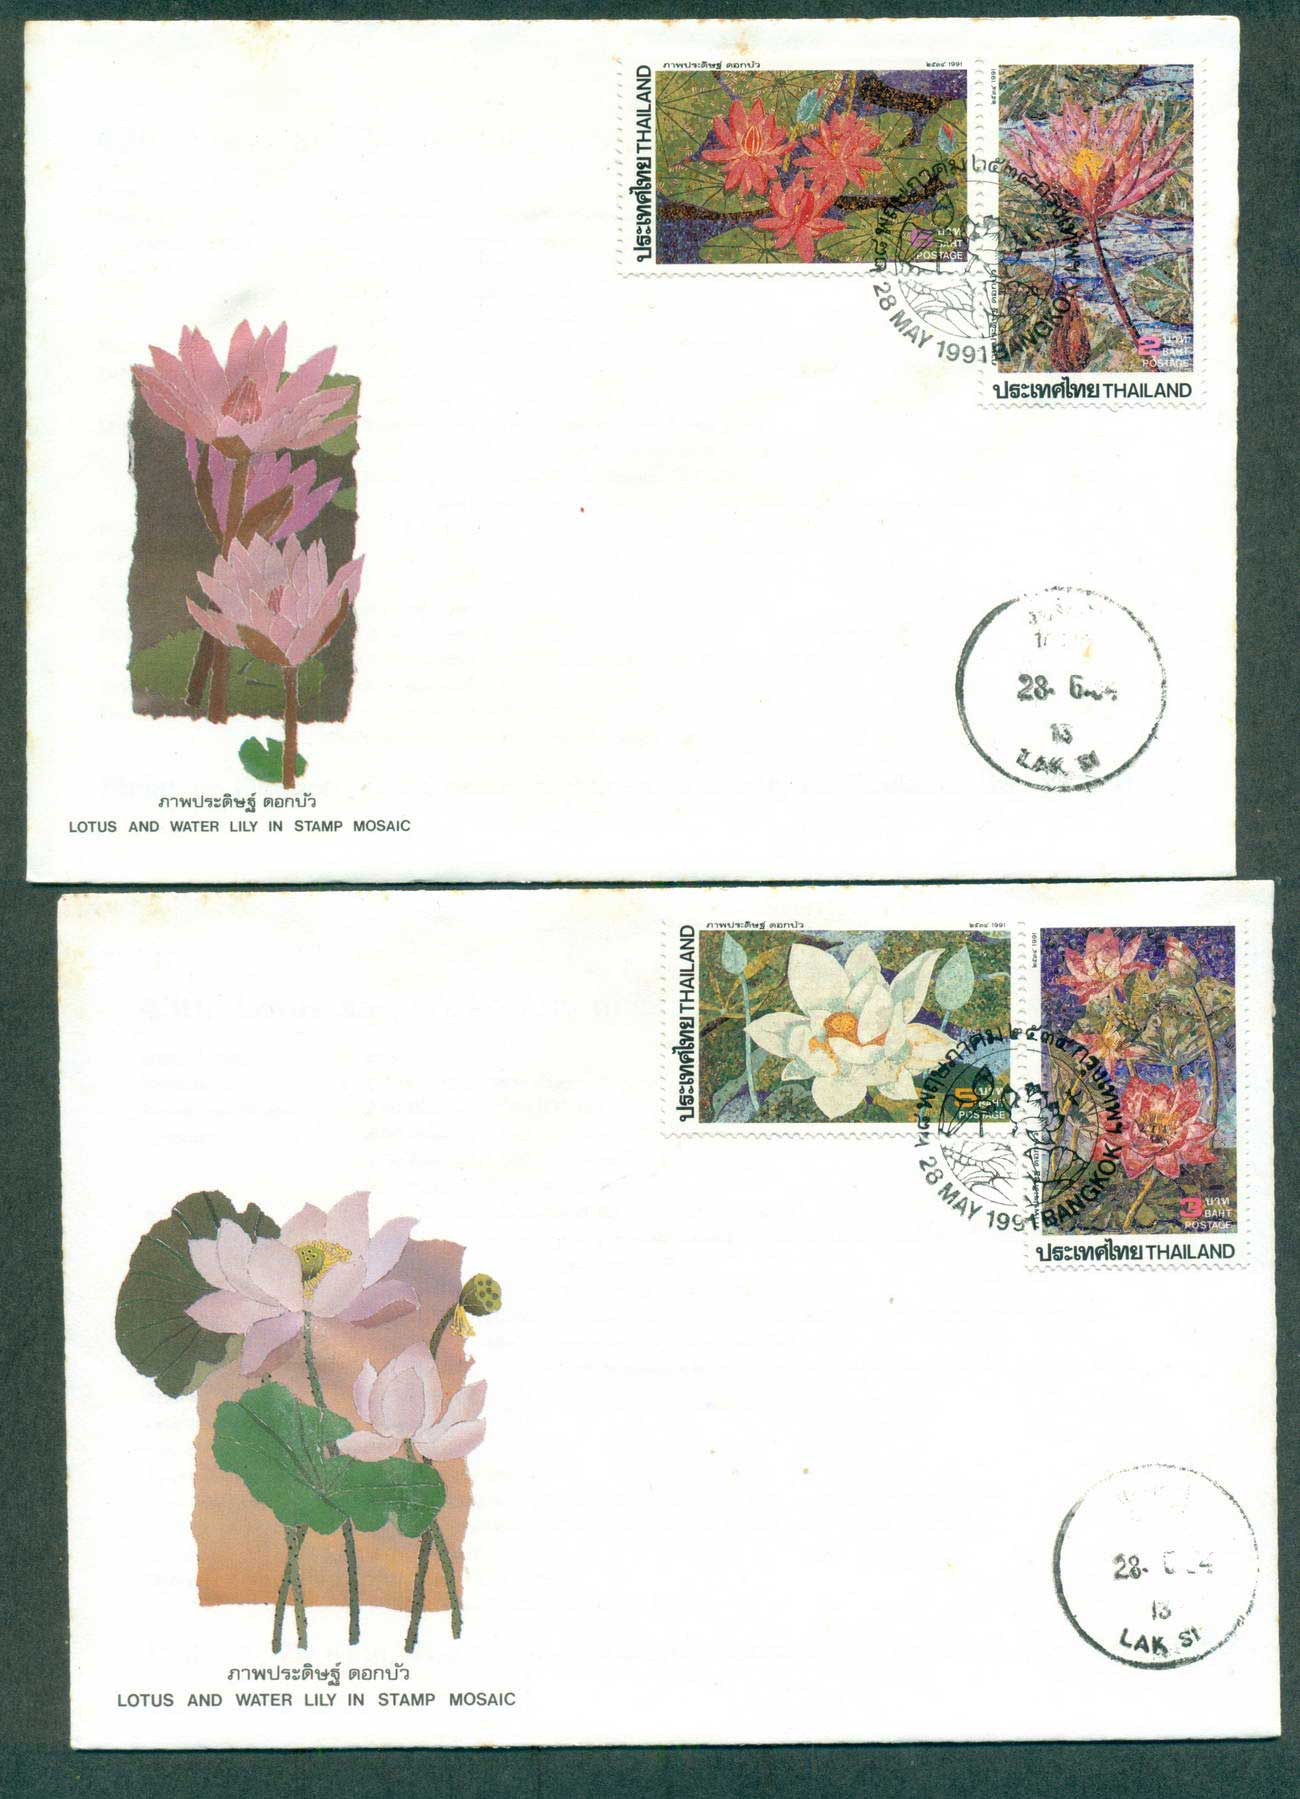 Thailand 1991 Waterlillies 2x FDC lot62110